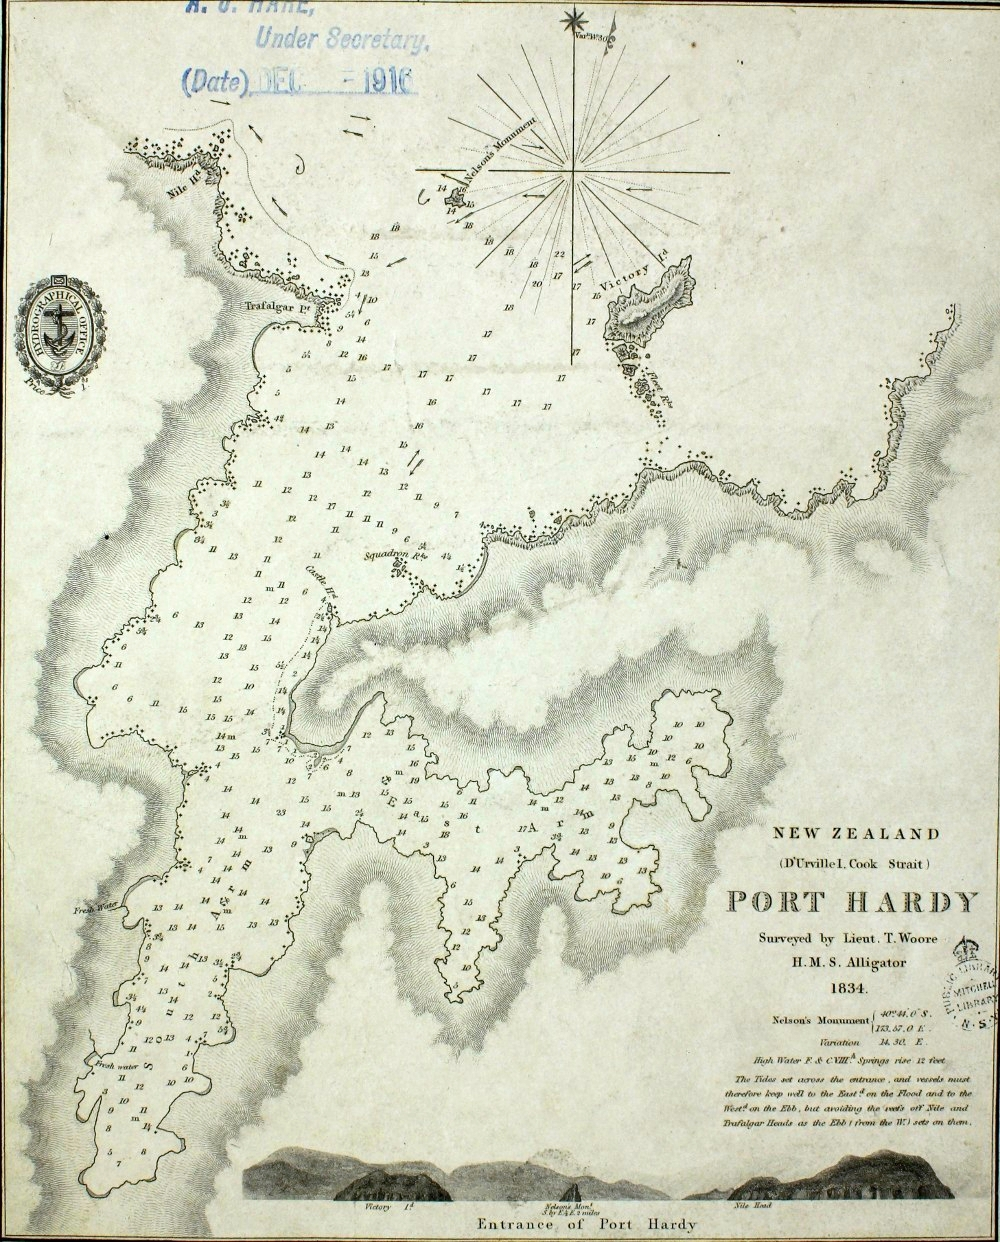 Map showing Port Hardy in the Cook Strait from 1834. In the bottom left hand corner there is a close up of the Port Hardy including a note about Nelson's Monument. SR Map 178